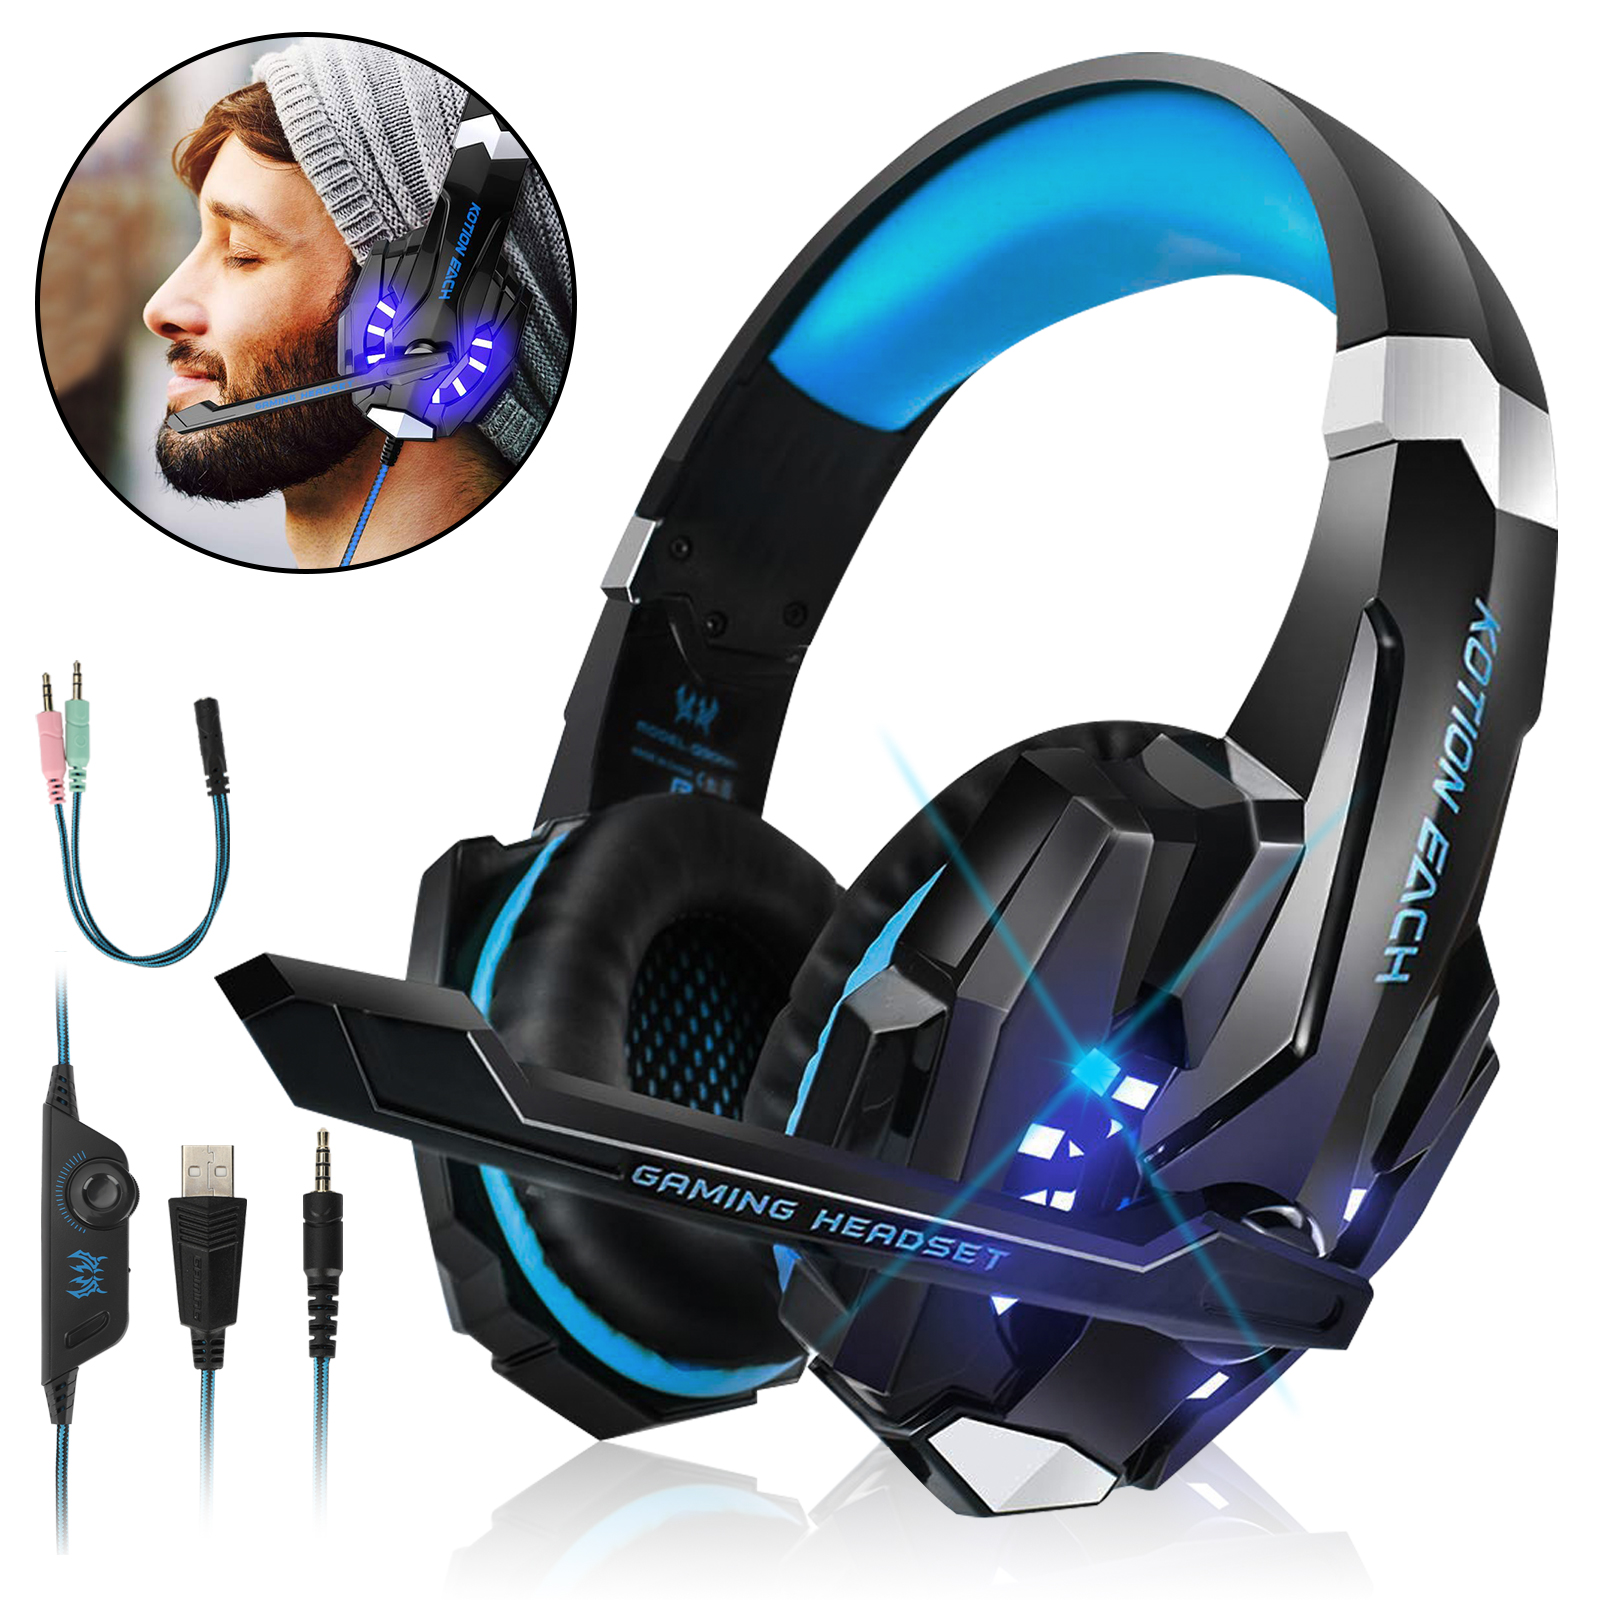 3-5mm-LED-Gaming-Headset-Mic-Headphone-Stereo-Bass-Surround-for-PS5-Xbox-One-PC thumbnail 11